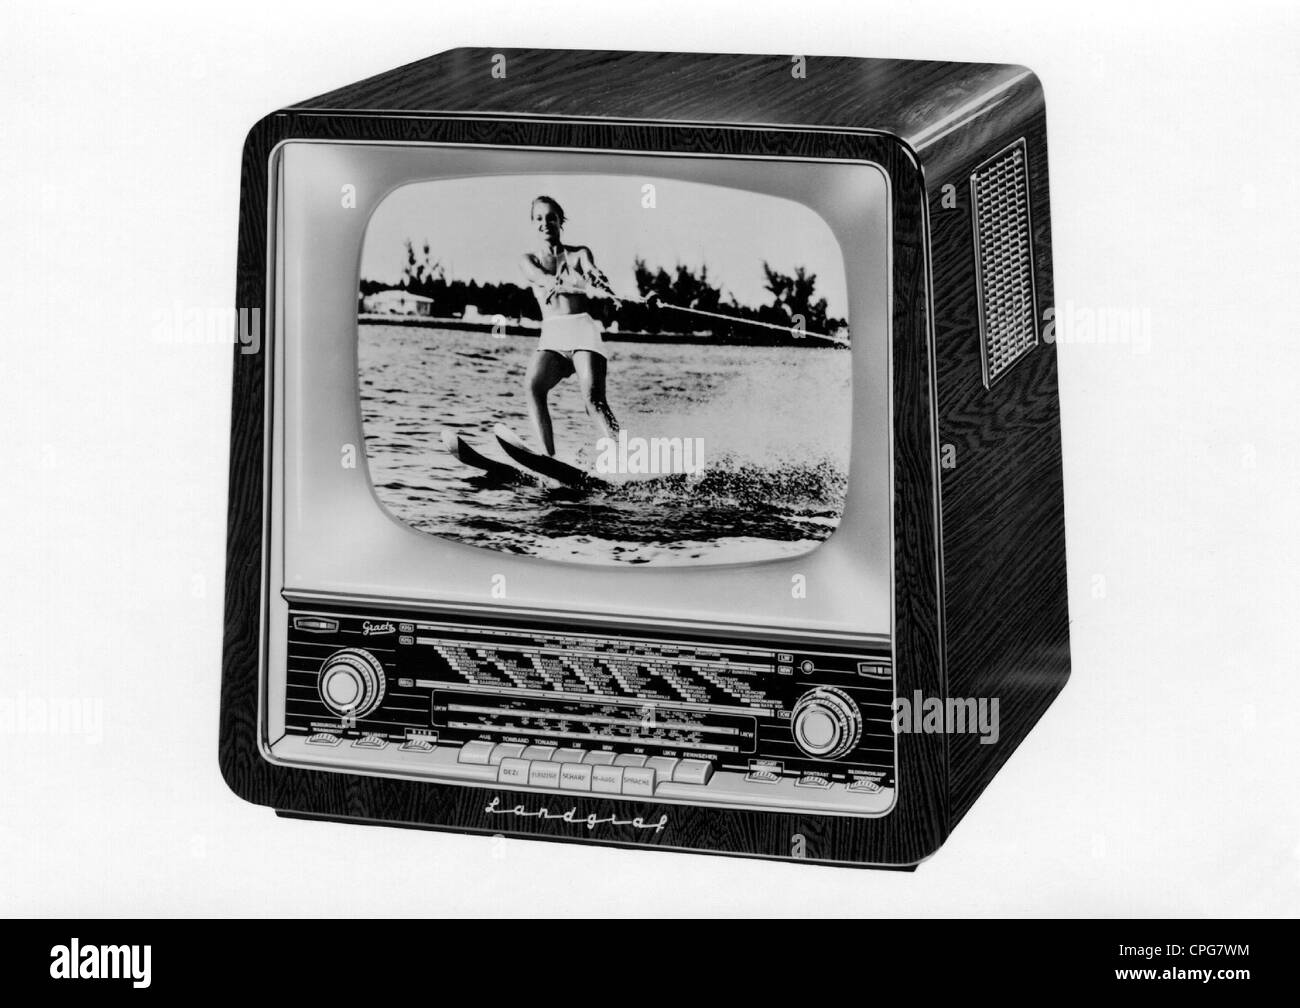 broadcast, television, Graetz TV set 'Landgraf', deluxe table version, 43 cm tube and TV automatic, 1950s, - Stock Image